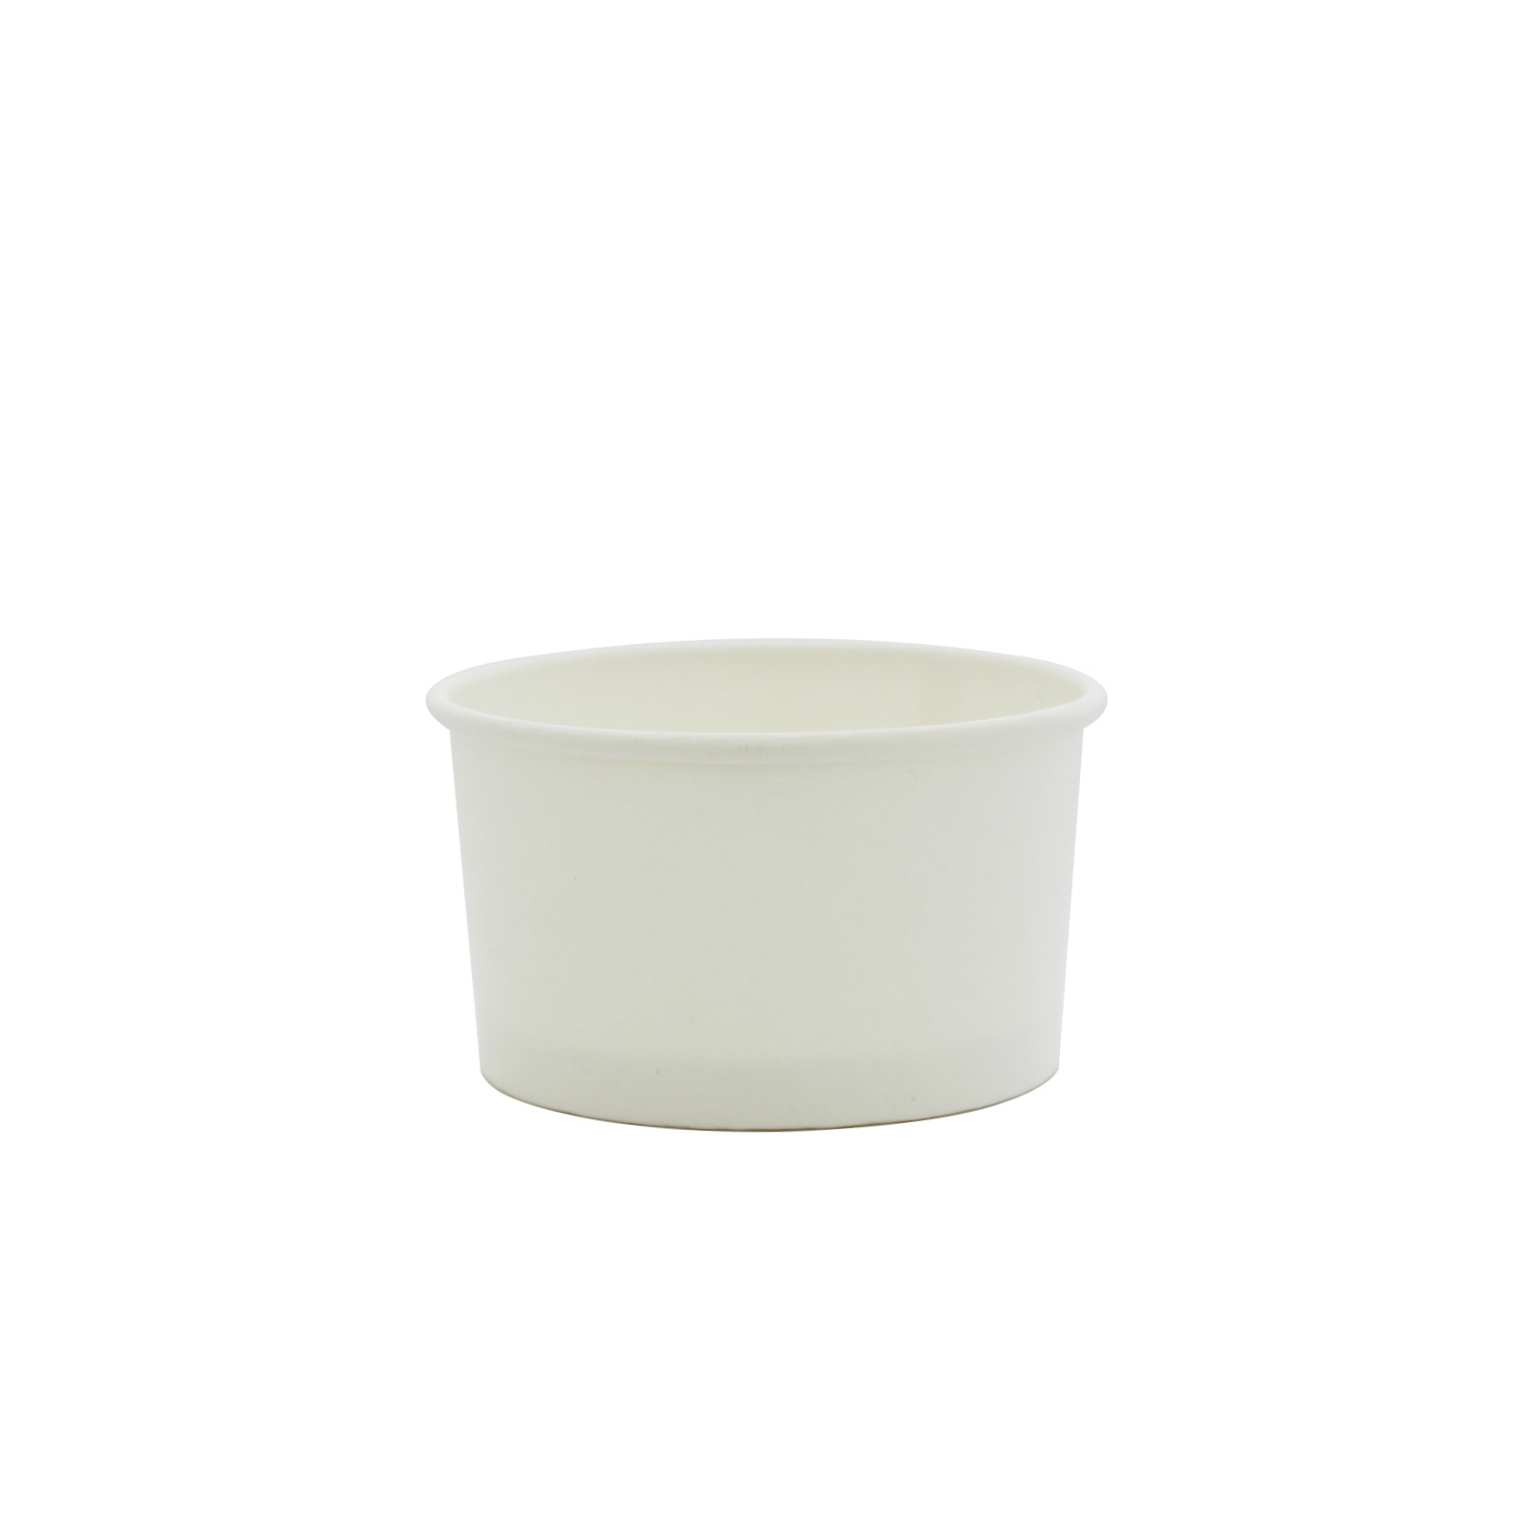 Tazza di yogurt in carta da 5 once - Bicchiere di carta